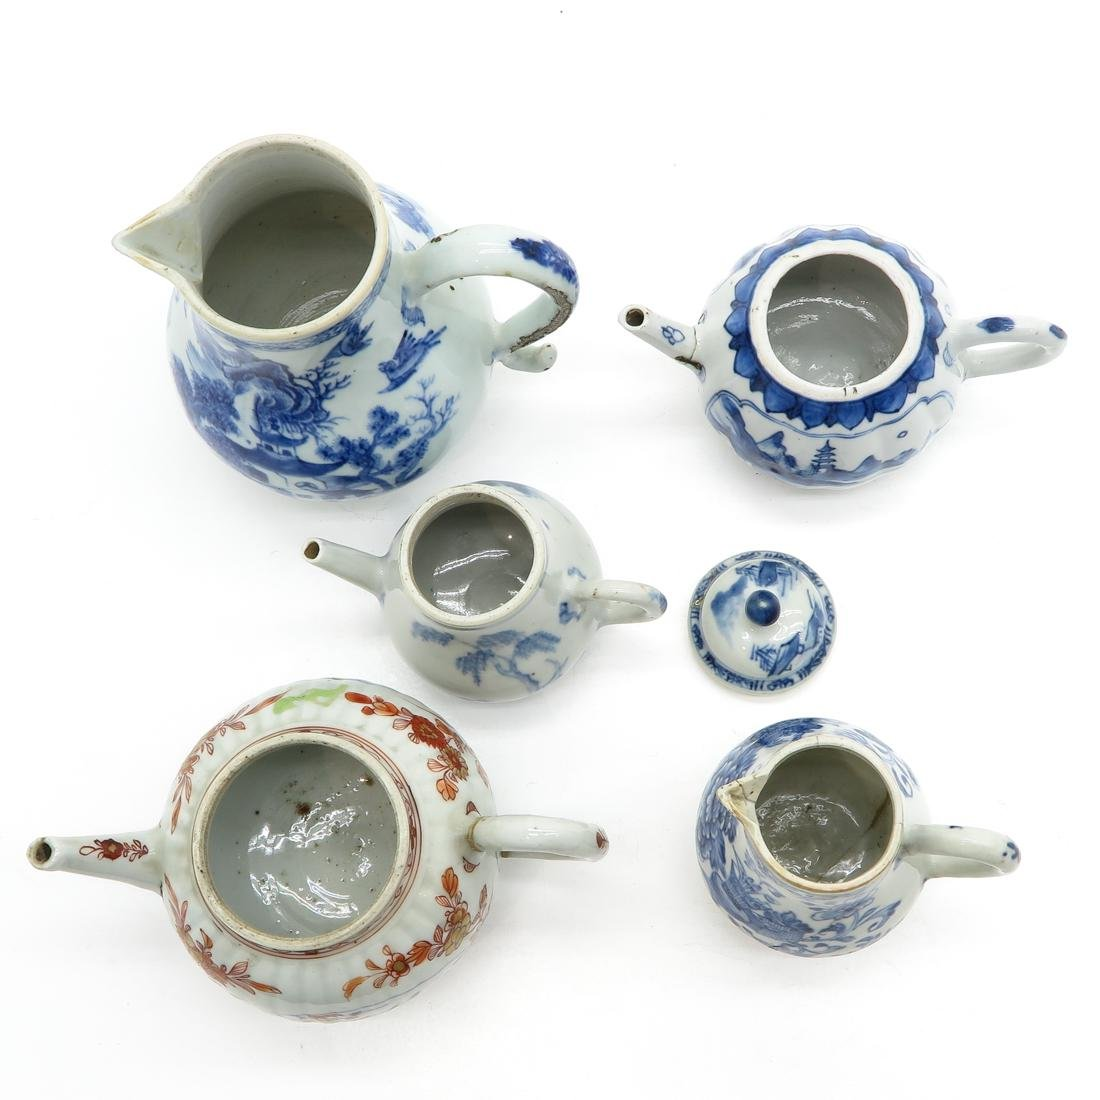 Diverse Lot of Creamers & Teapots - 5